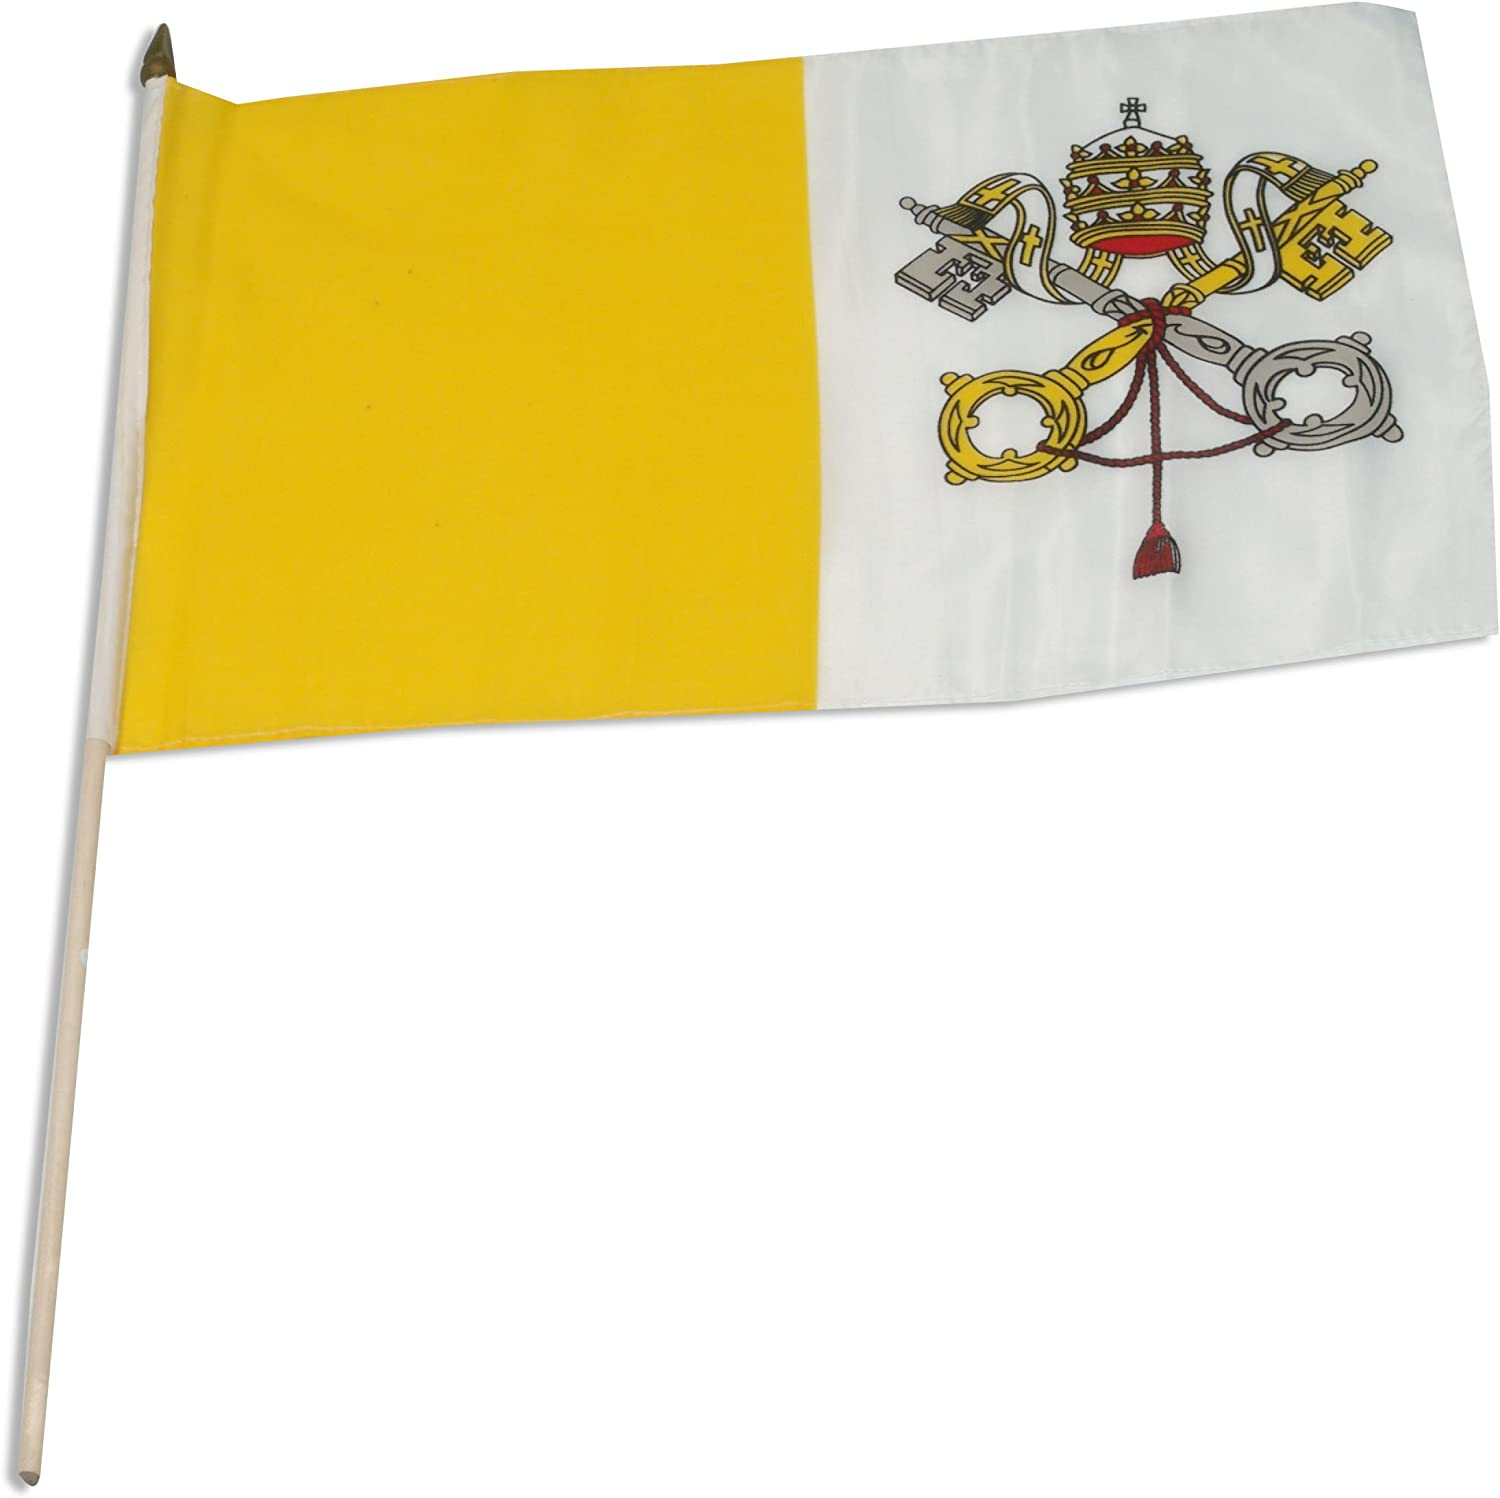 US Flag Store Vatican City Flag, 12 by 18-Inch